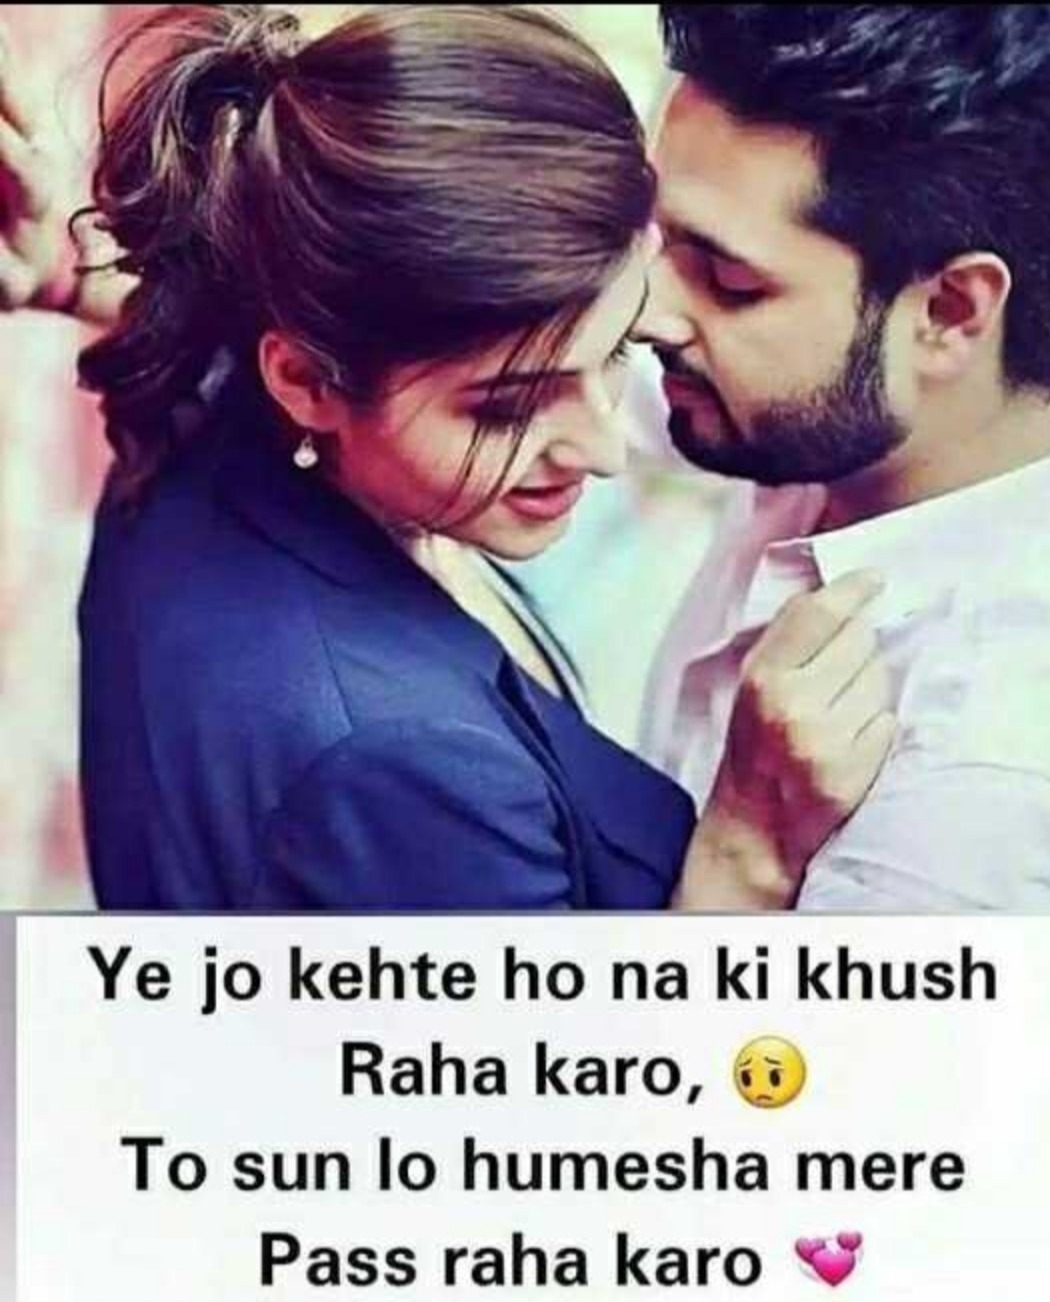 boy is very close to girl. girl is standing with wall. both's body each other. boy wear white shirt and girl wear blue coat. boy is looking to girl and girl is looking right side. love lines are wirtten in white area.